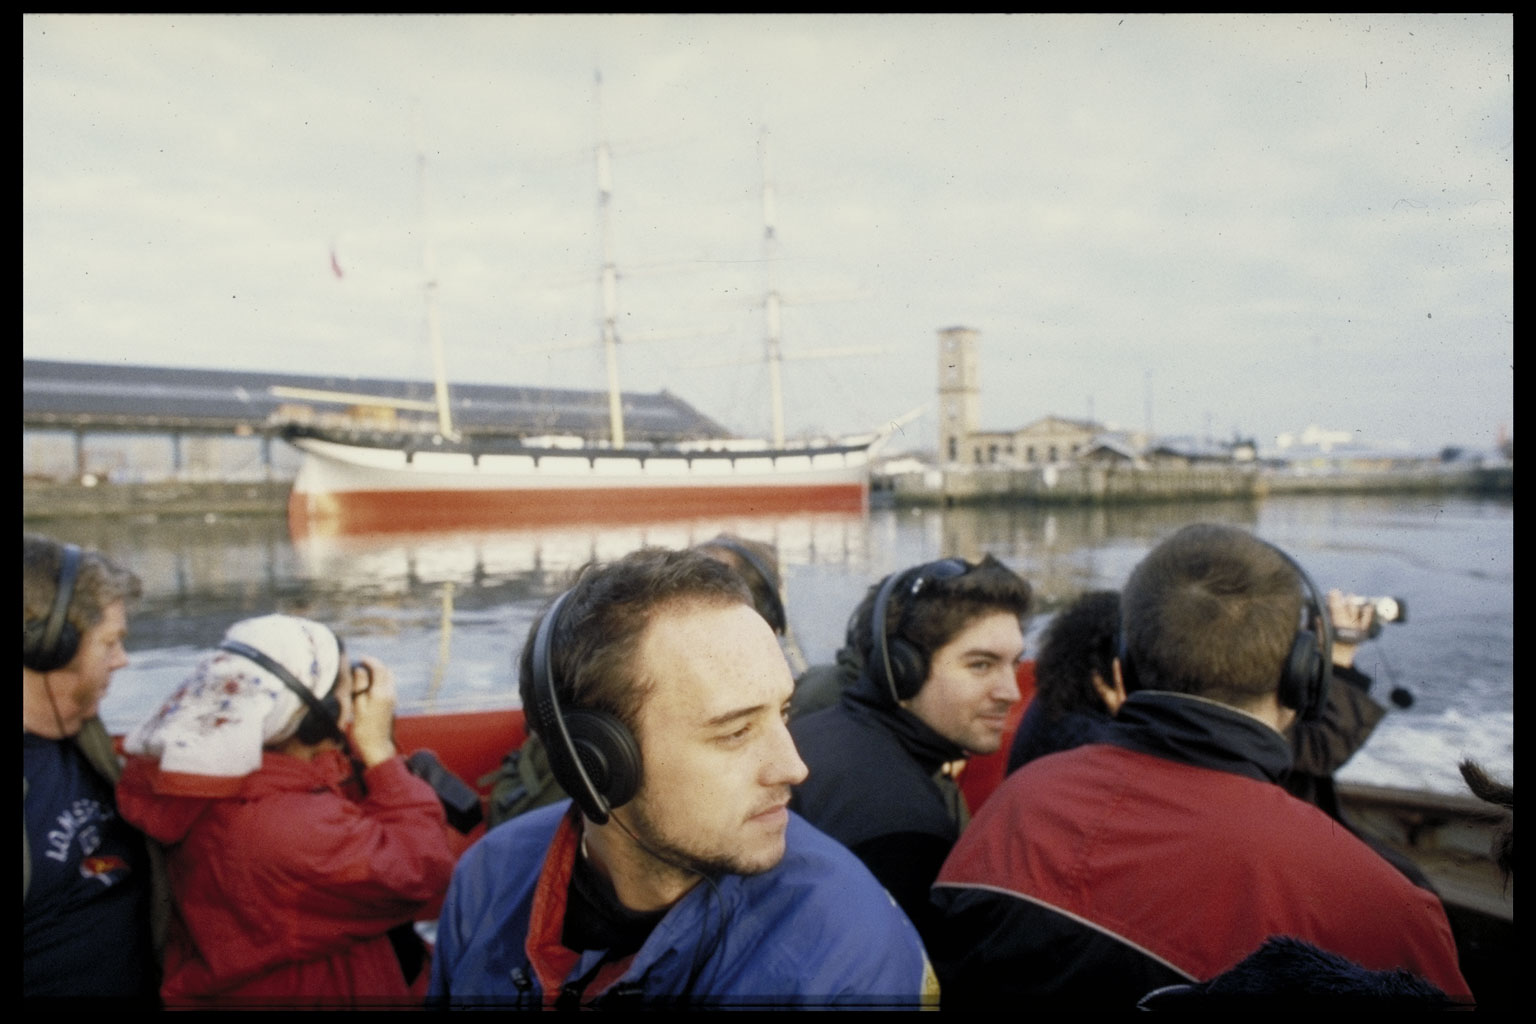 Zones - an audiology of the River Clyde